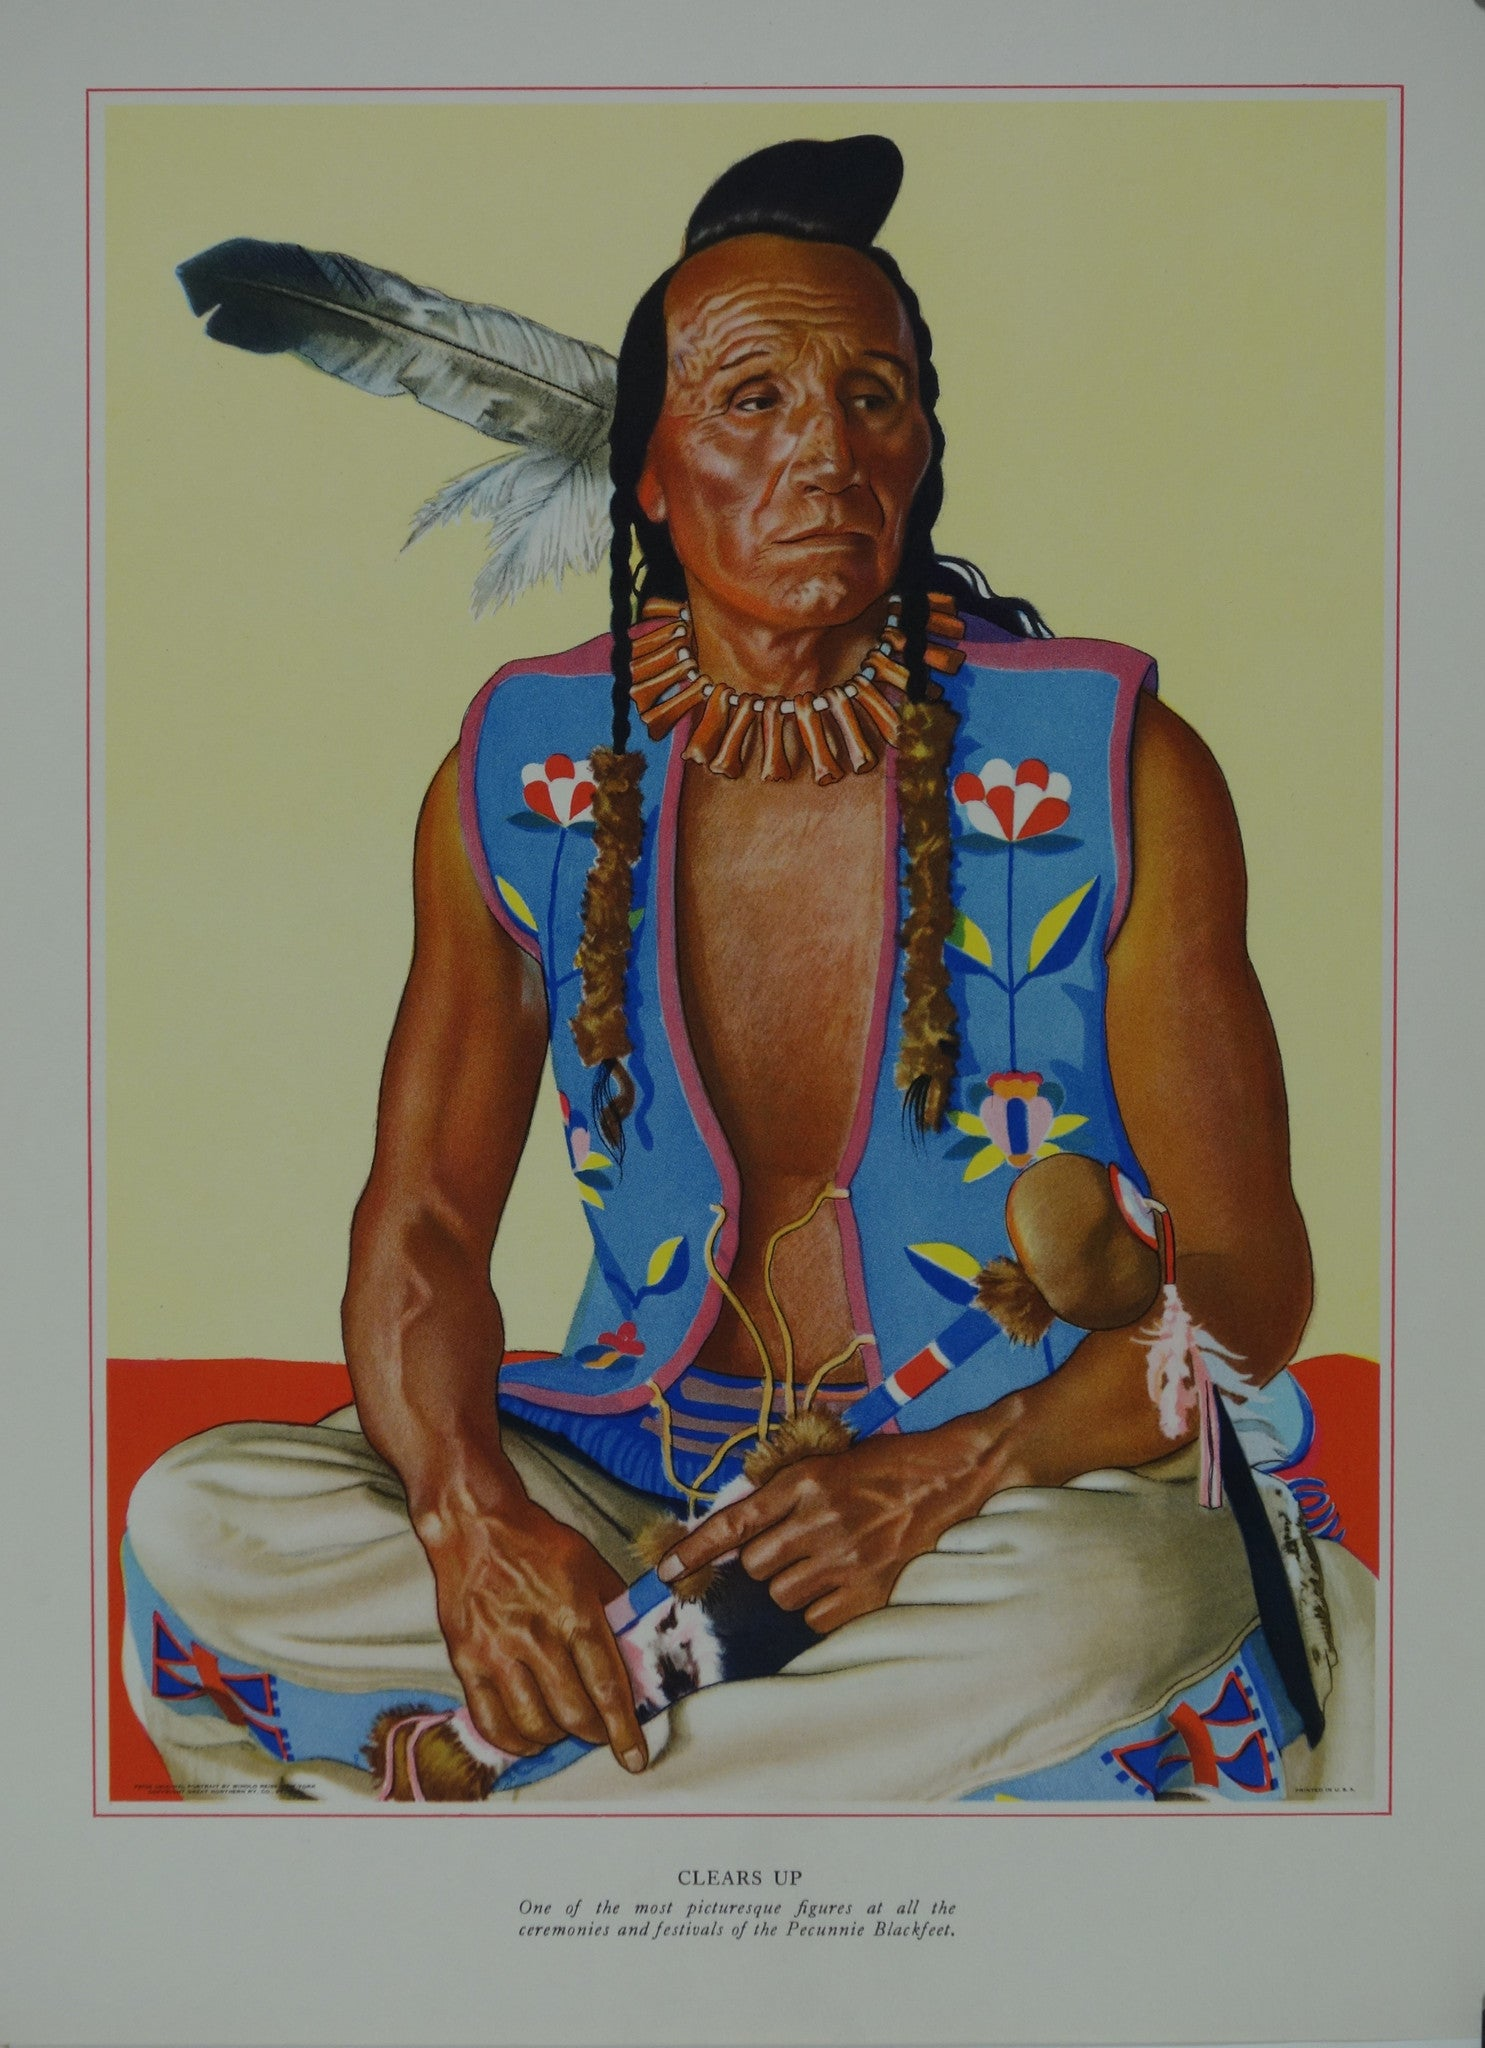 Portrait of Blackfeet Indian - Clears Up